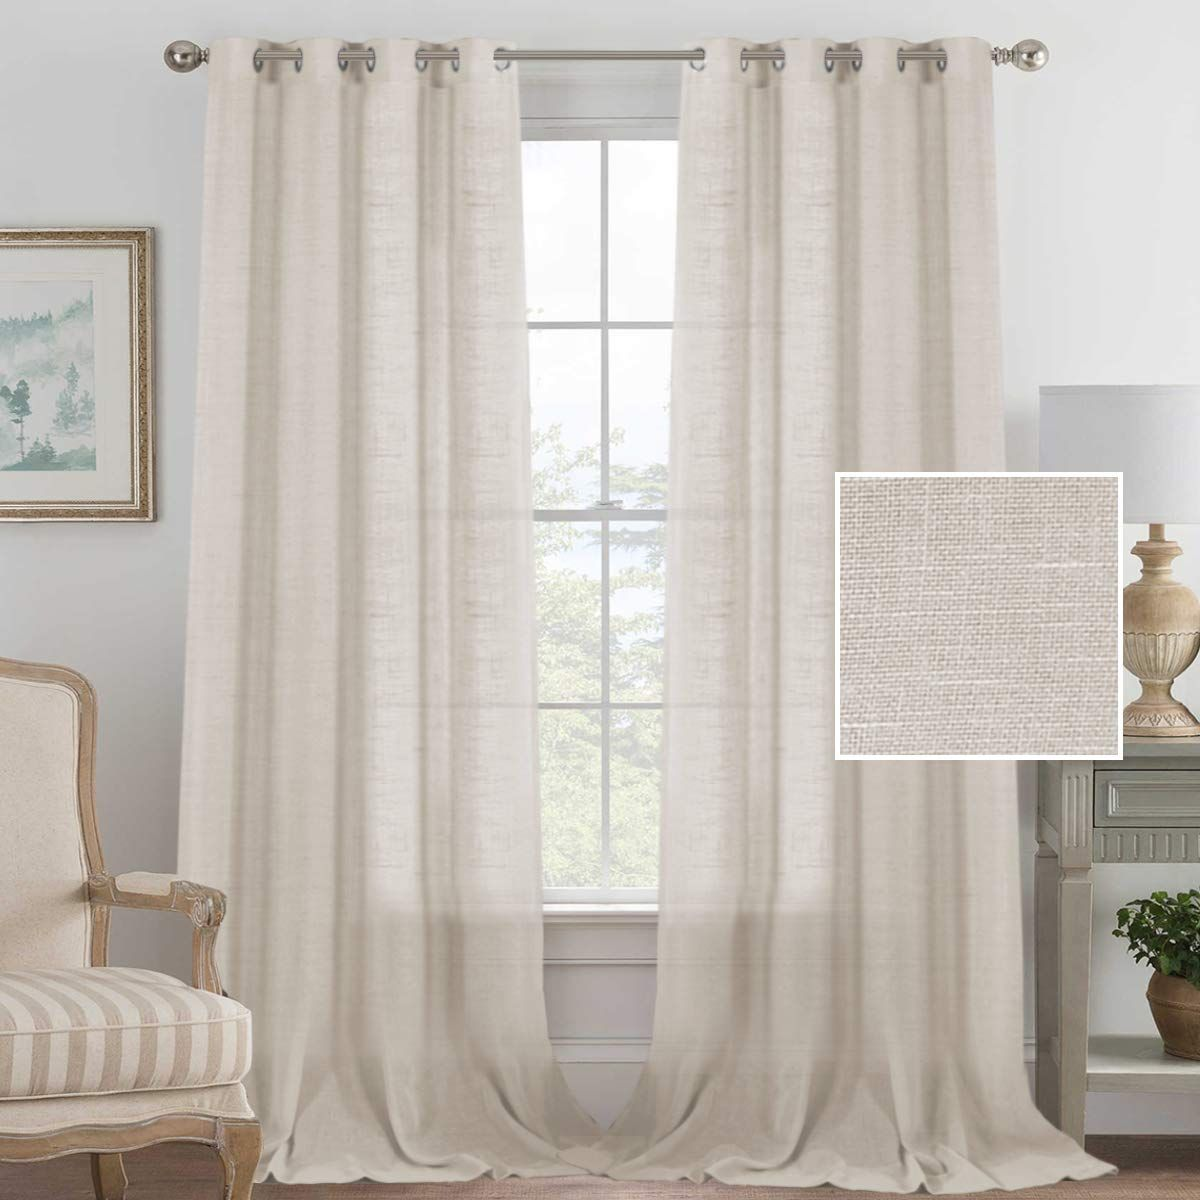 Linen Curtains Sliding Door Semi Sheer Curtain Panels American Country Style Linen Curtain Drapes For Patio Girls Room Curtains Curtains Living Room Curtains